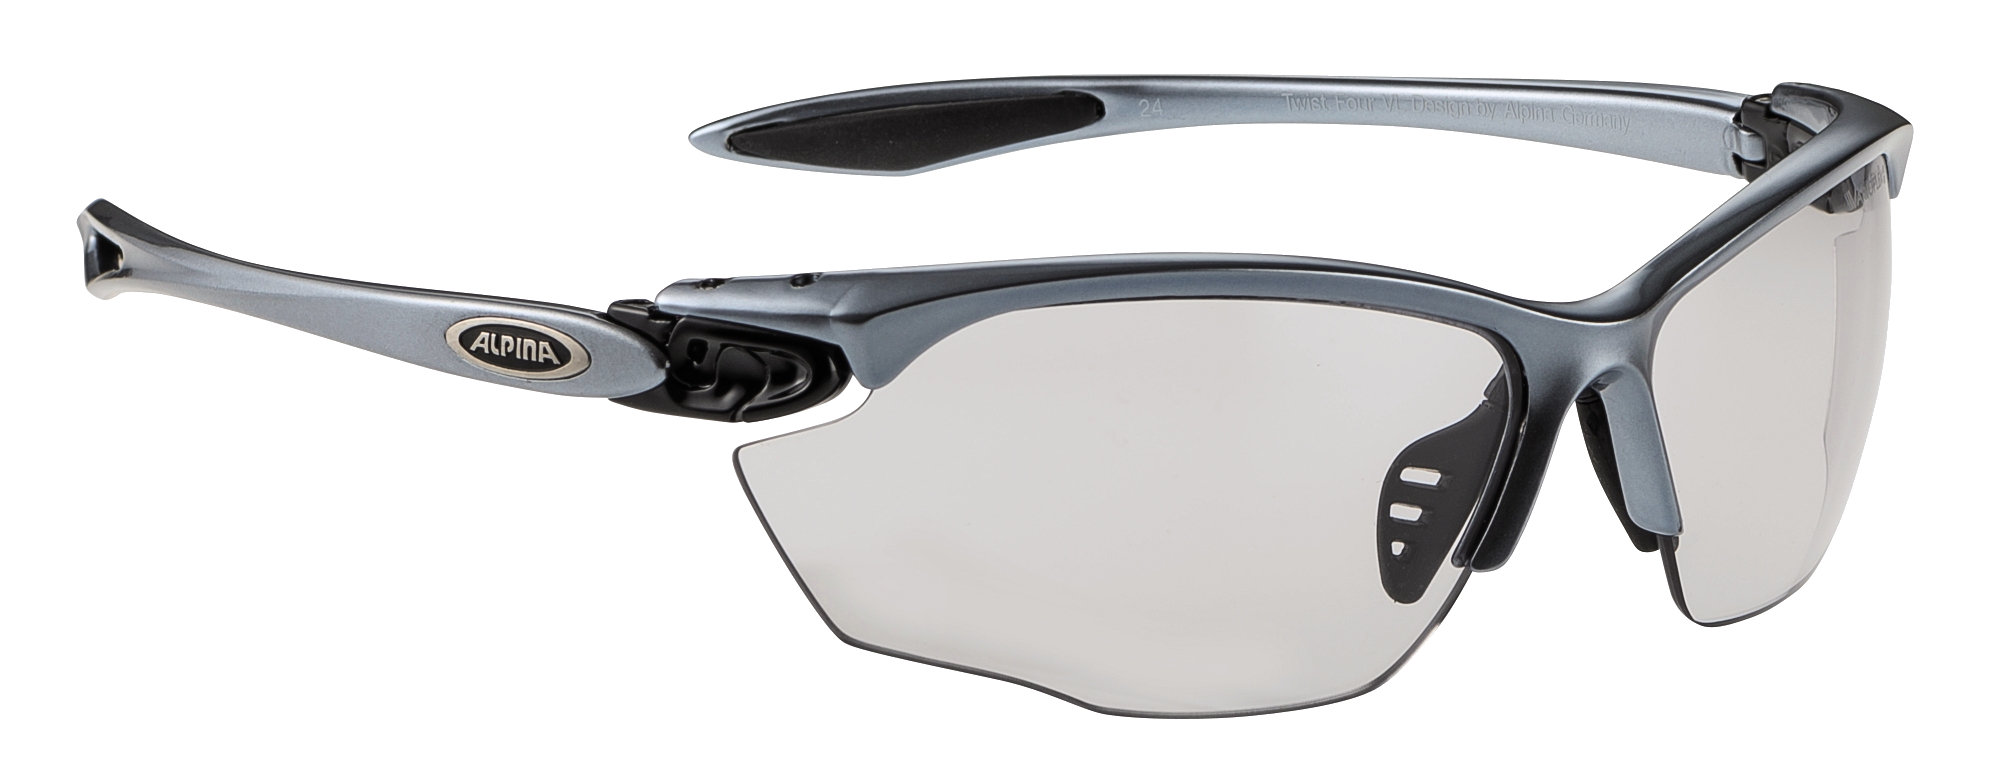 Flying Debris Png Sport sunglasses PNG i...